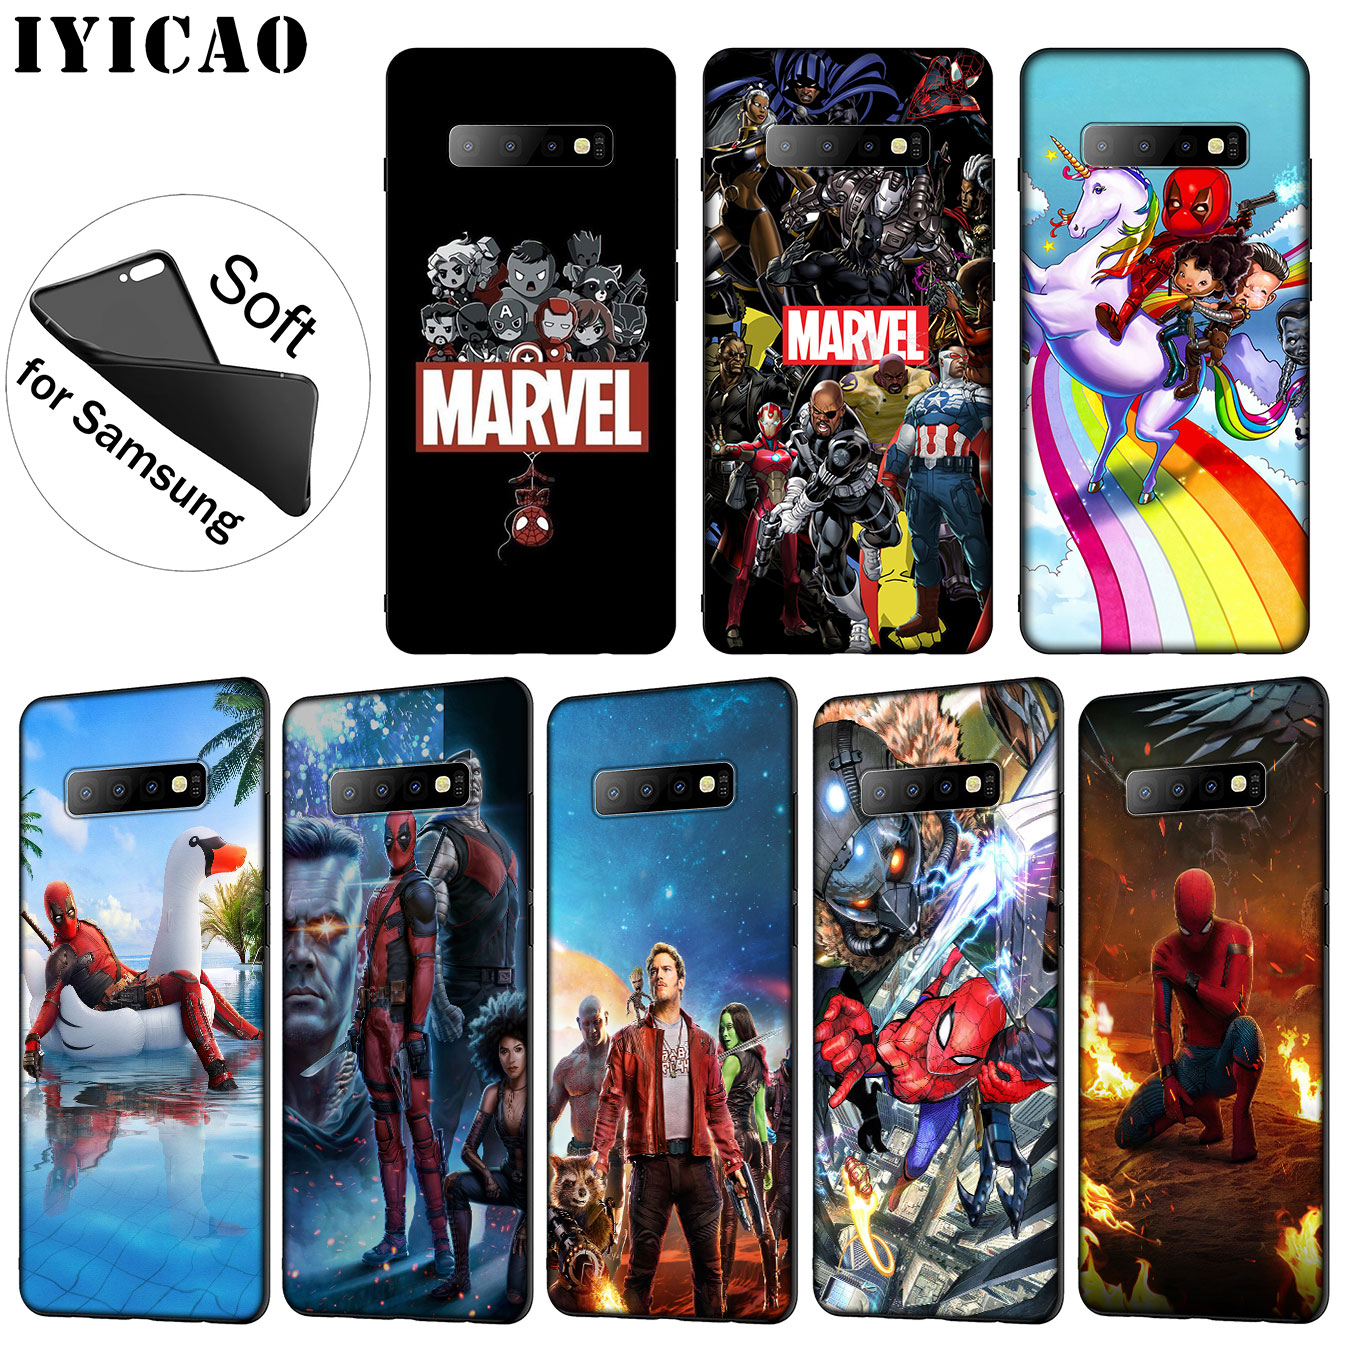 IYICAO Marvel The Avengers Jorker Dead Pool Soft Silicone Phone Case for Samsung Galaxy S10 S9 S8 Plus S6 S7 Edge S10e E Cover